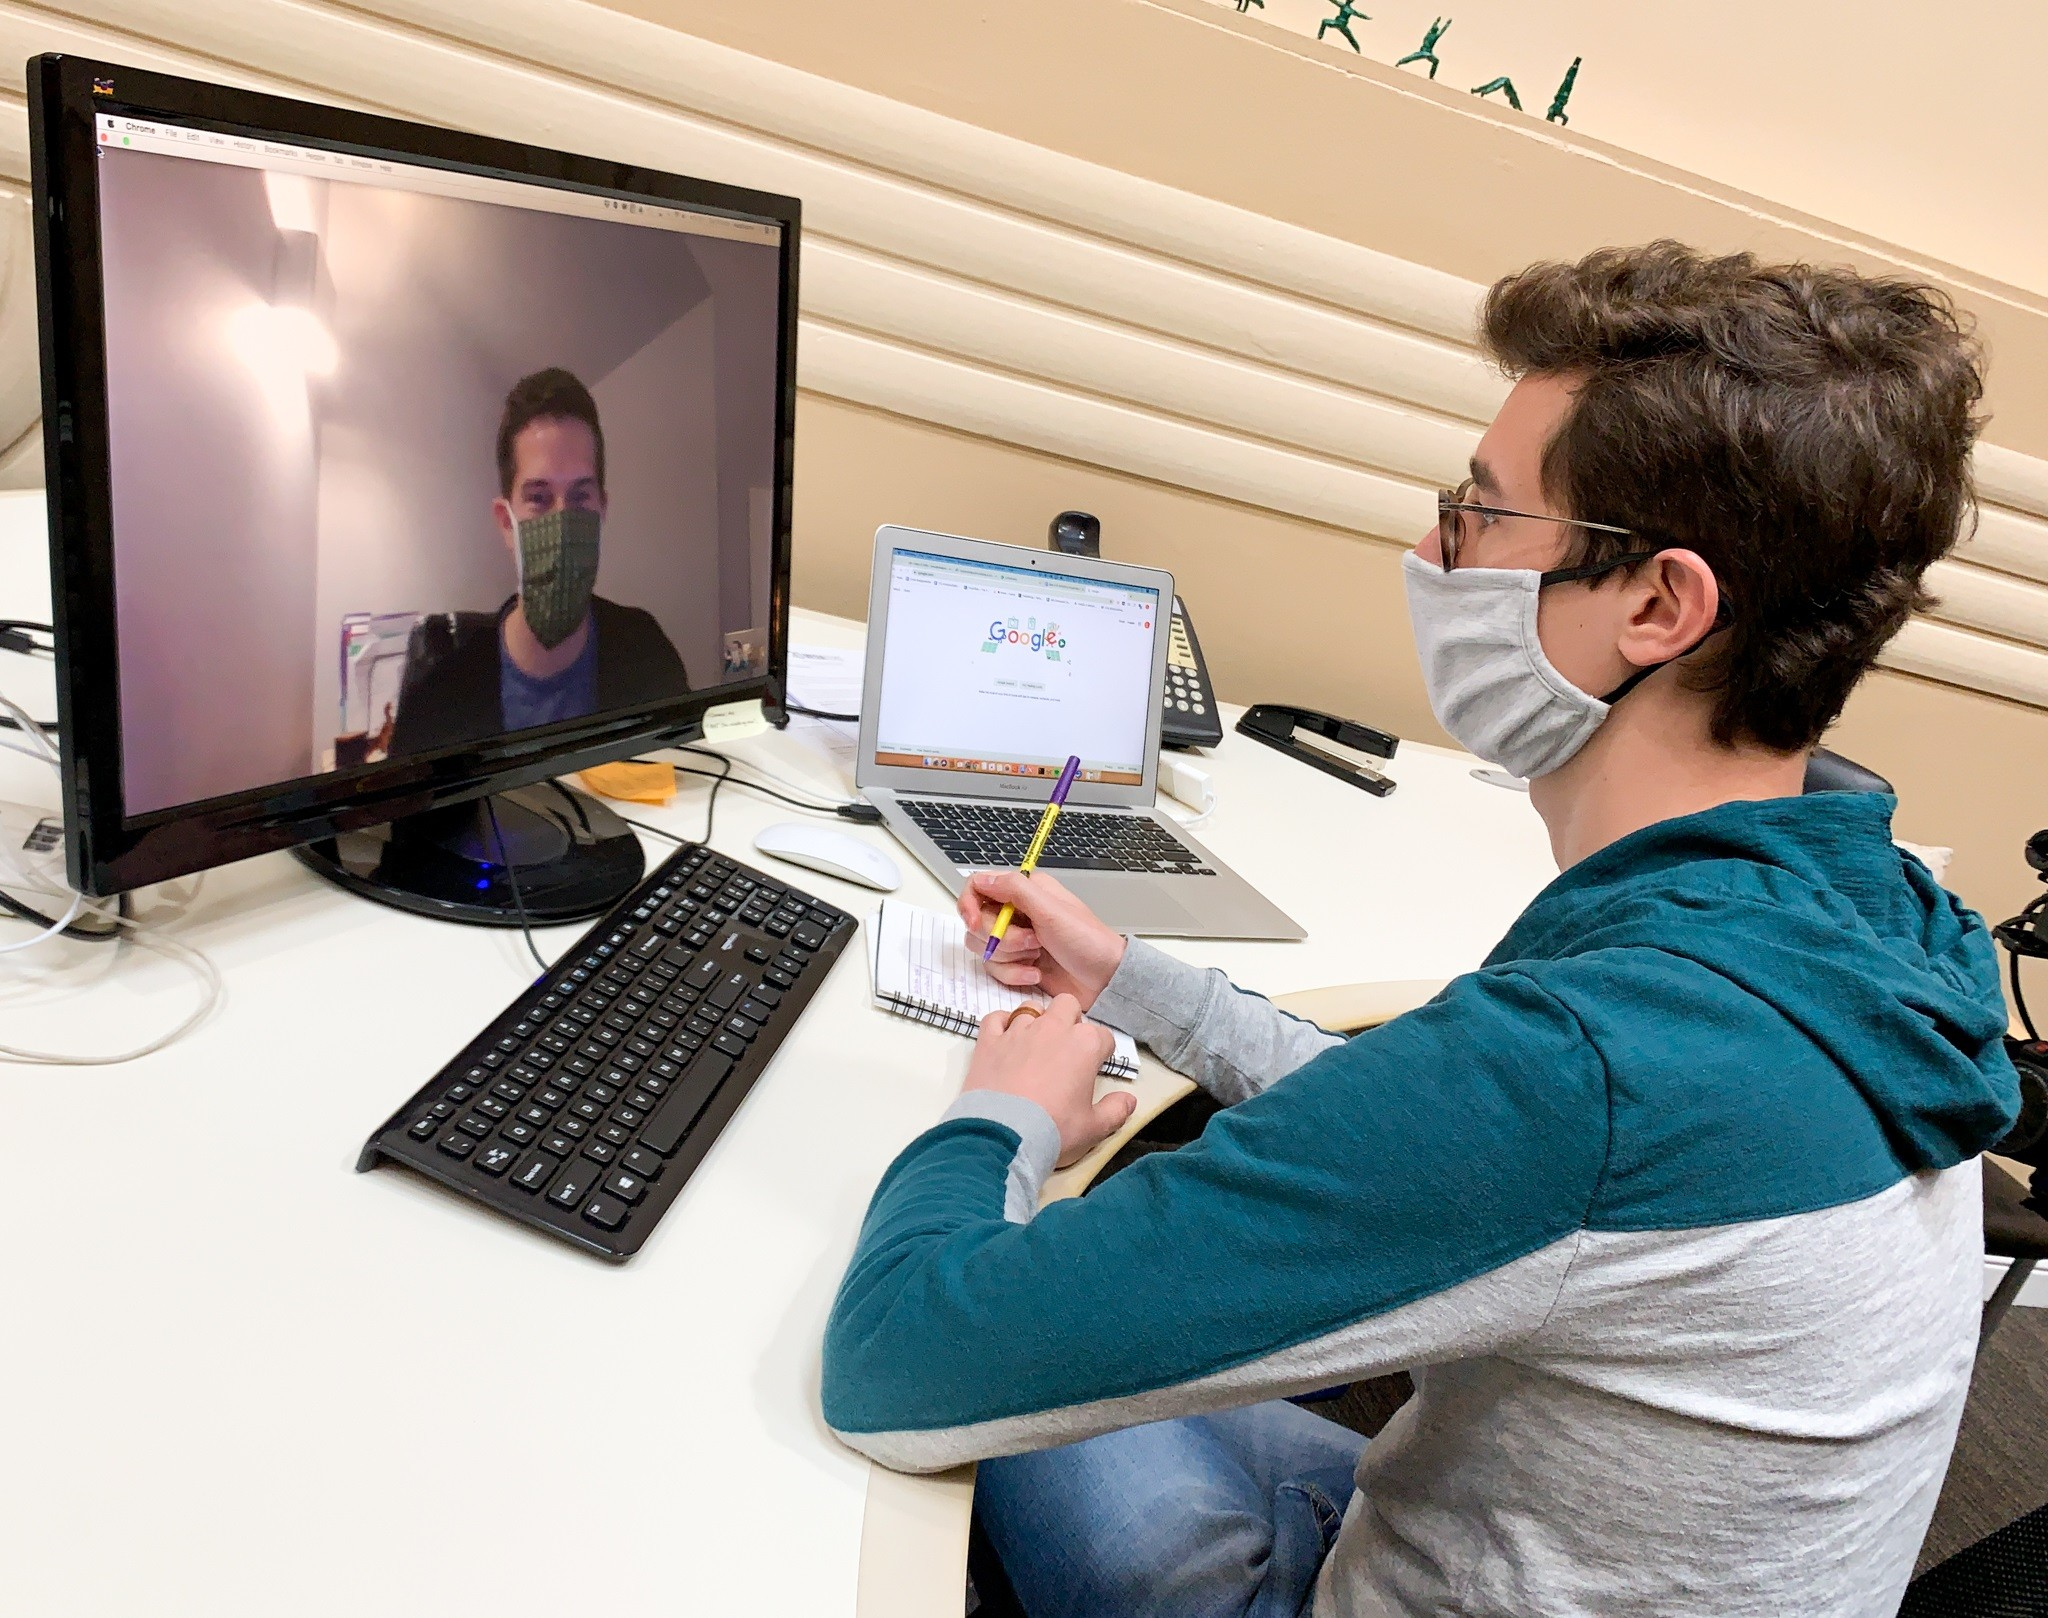 Virtual meetings will still be a helpful tool as Americans return to the workplace and physical distancing continues to be an important precautionary measure to prevent the spread of COVID-19. (Photo courtesy of The Ohio State University Wexner Medical Center)